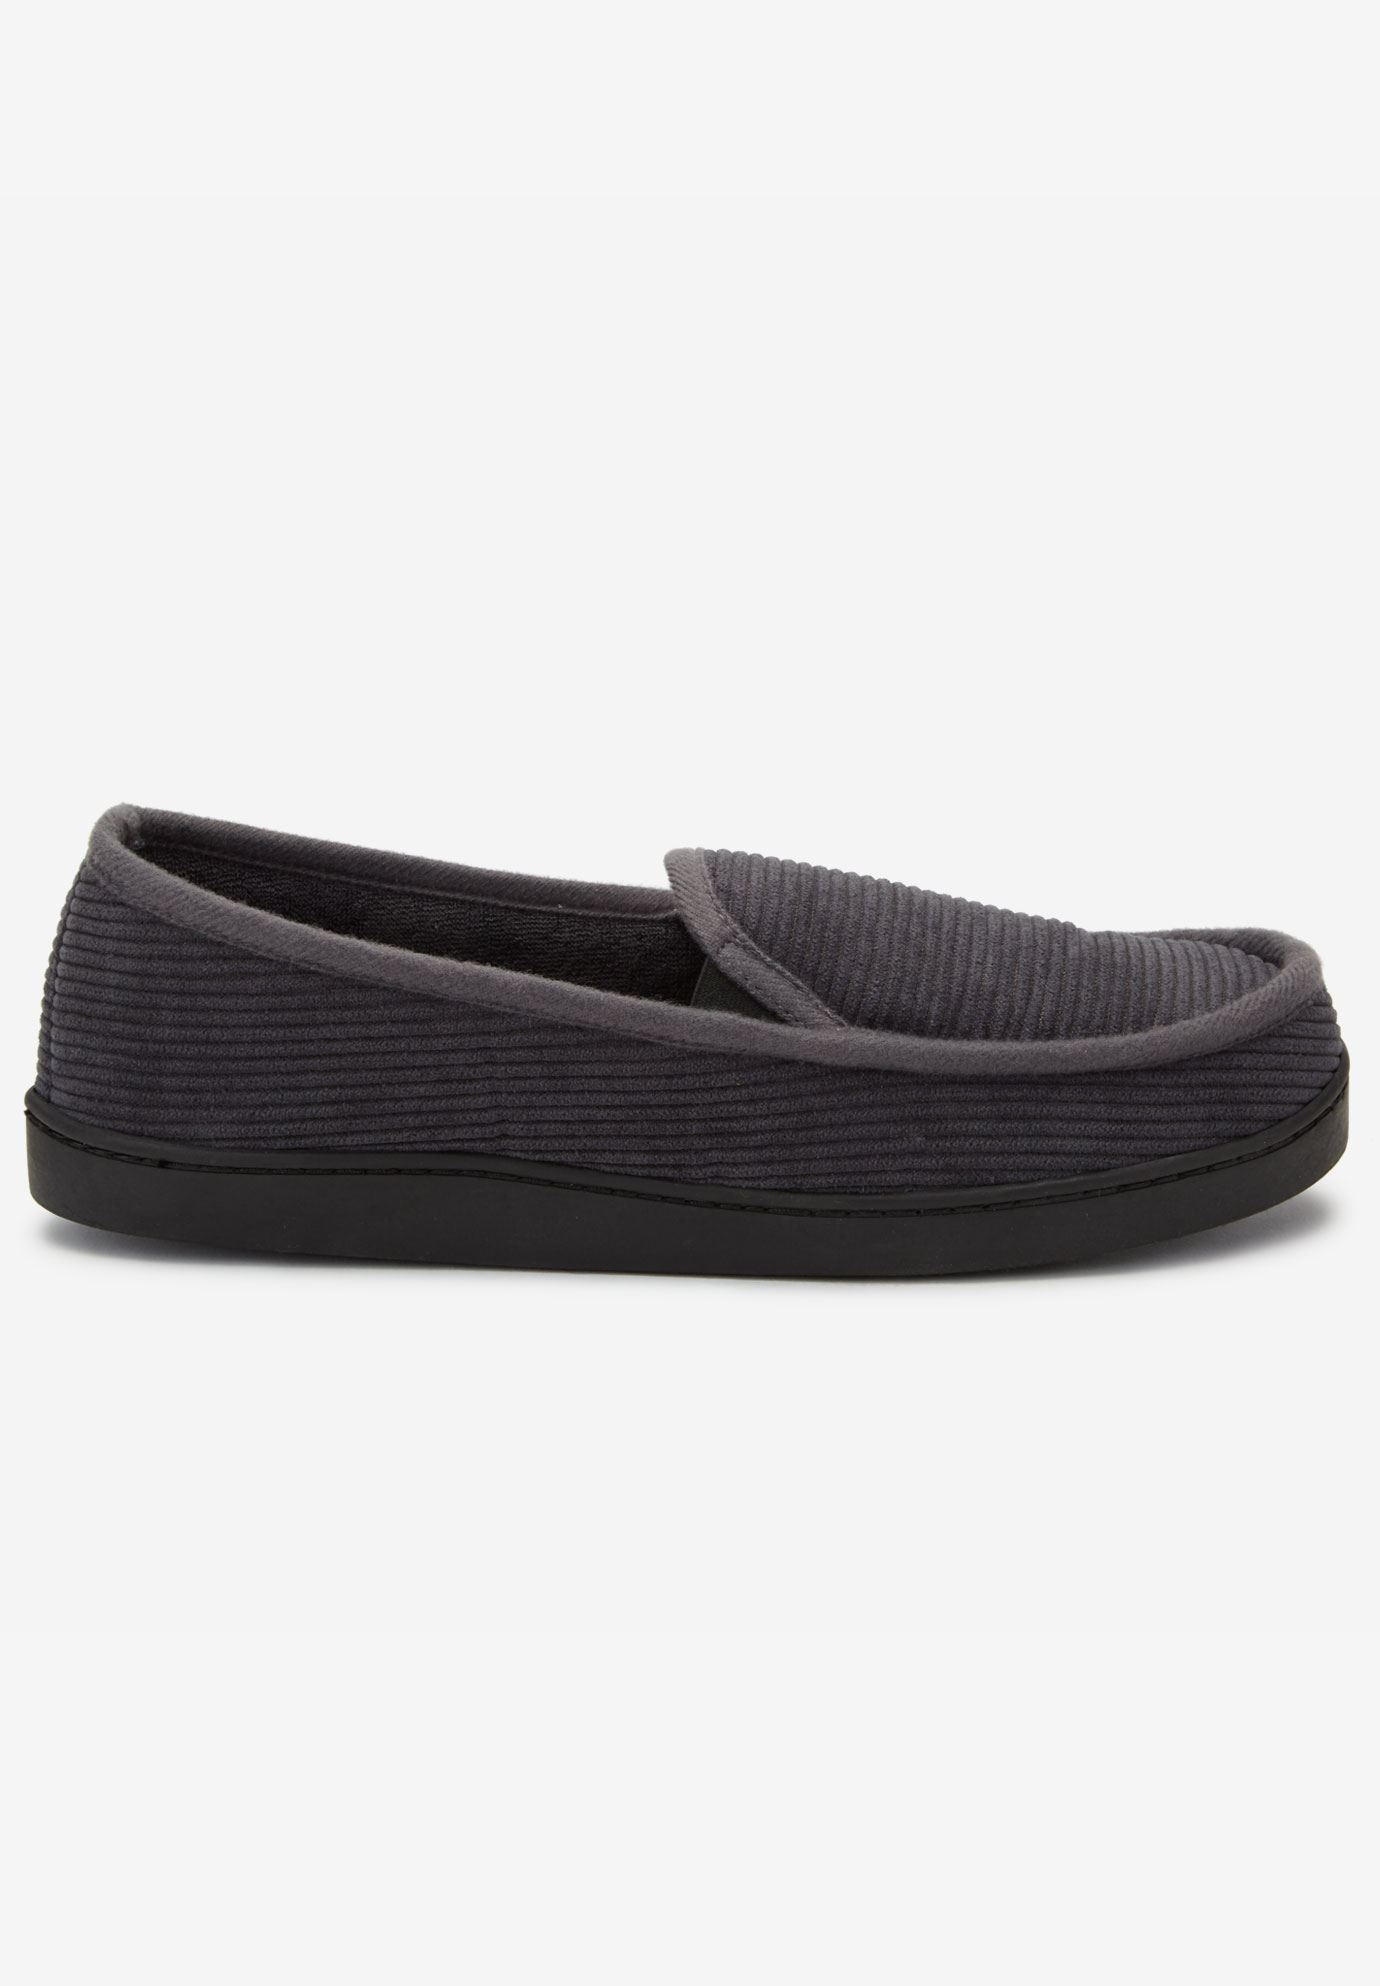 Cotton Corduroy Slippers,